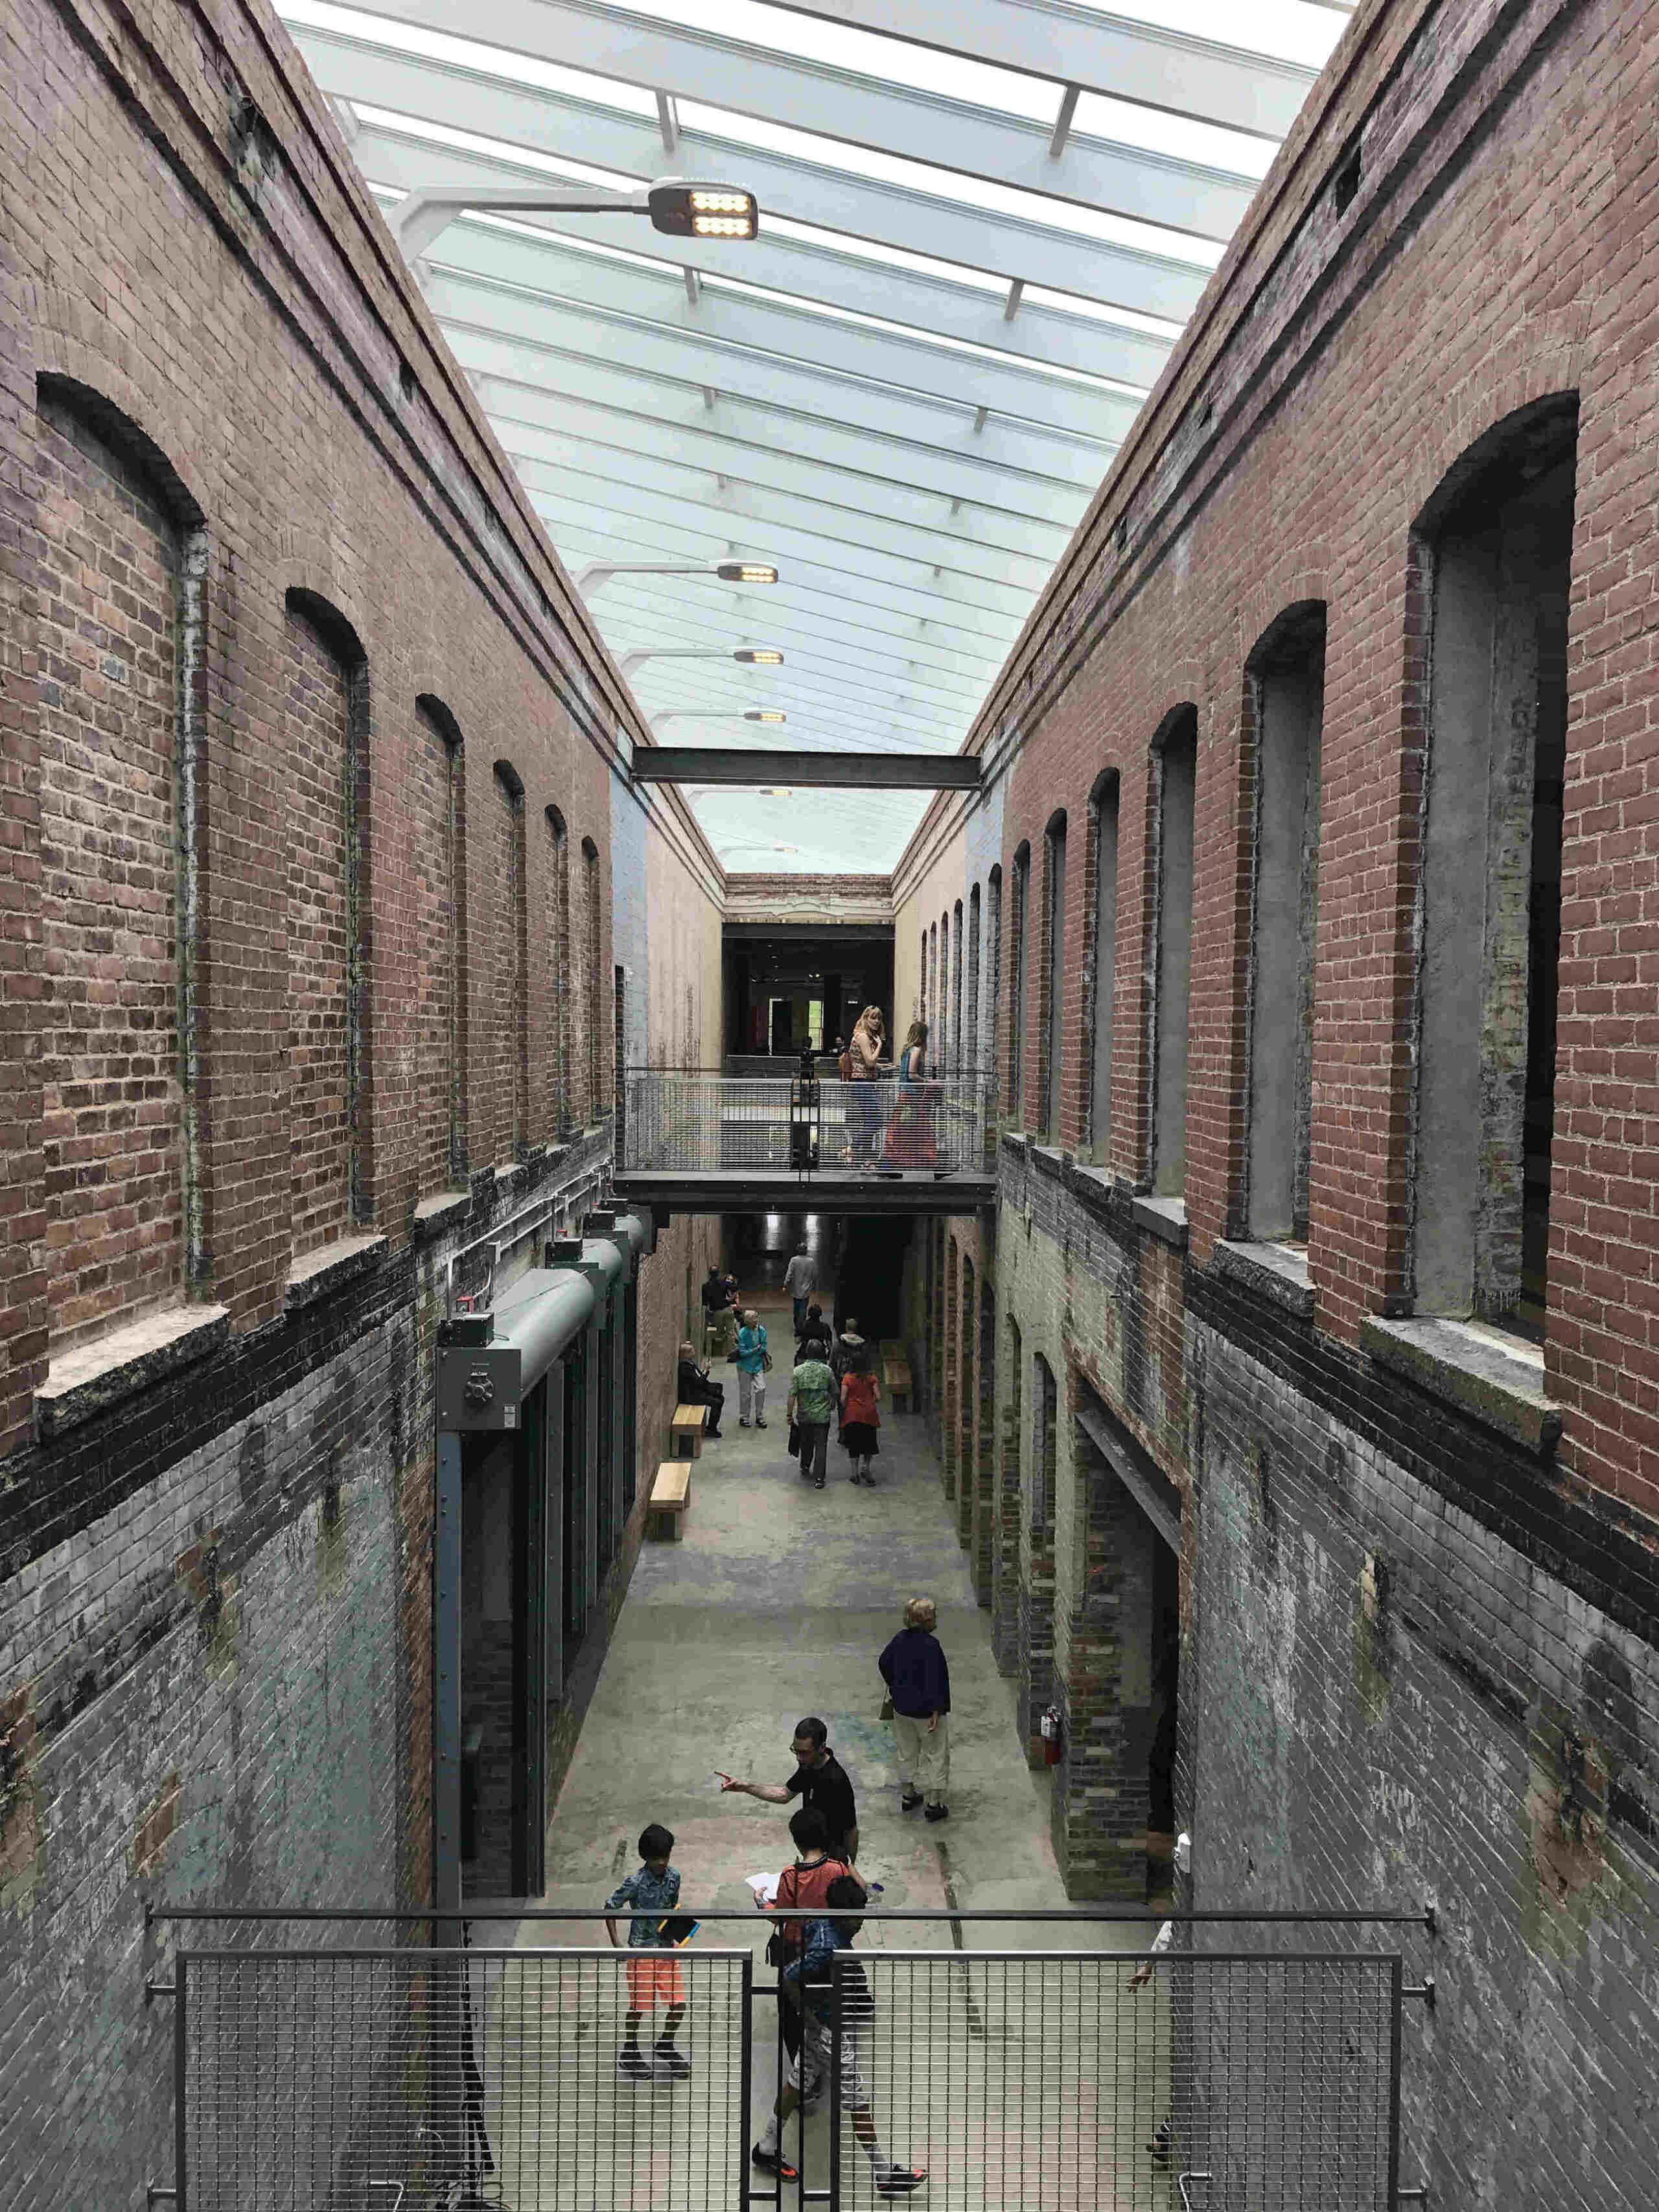 Vistas open across wide spaces in Mass MoCA's new Building 6. Photo by Kate Abbott